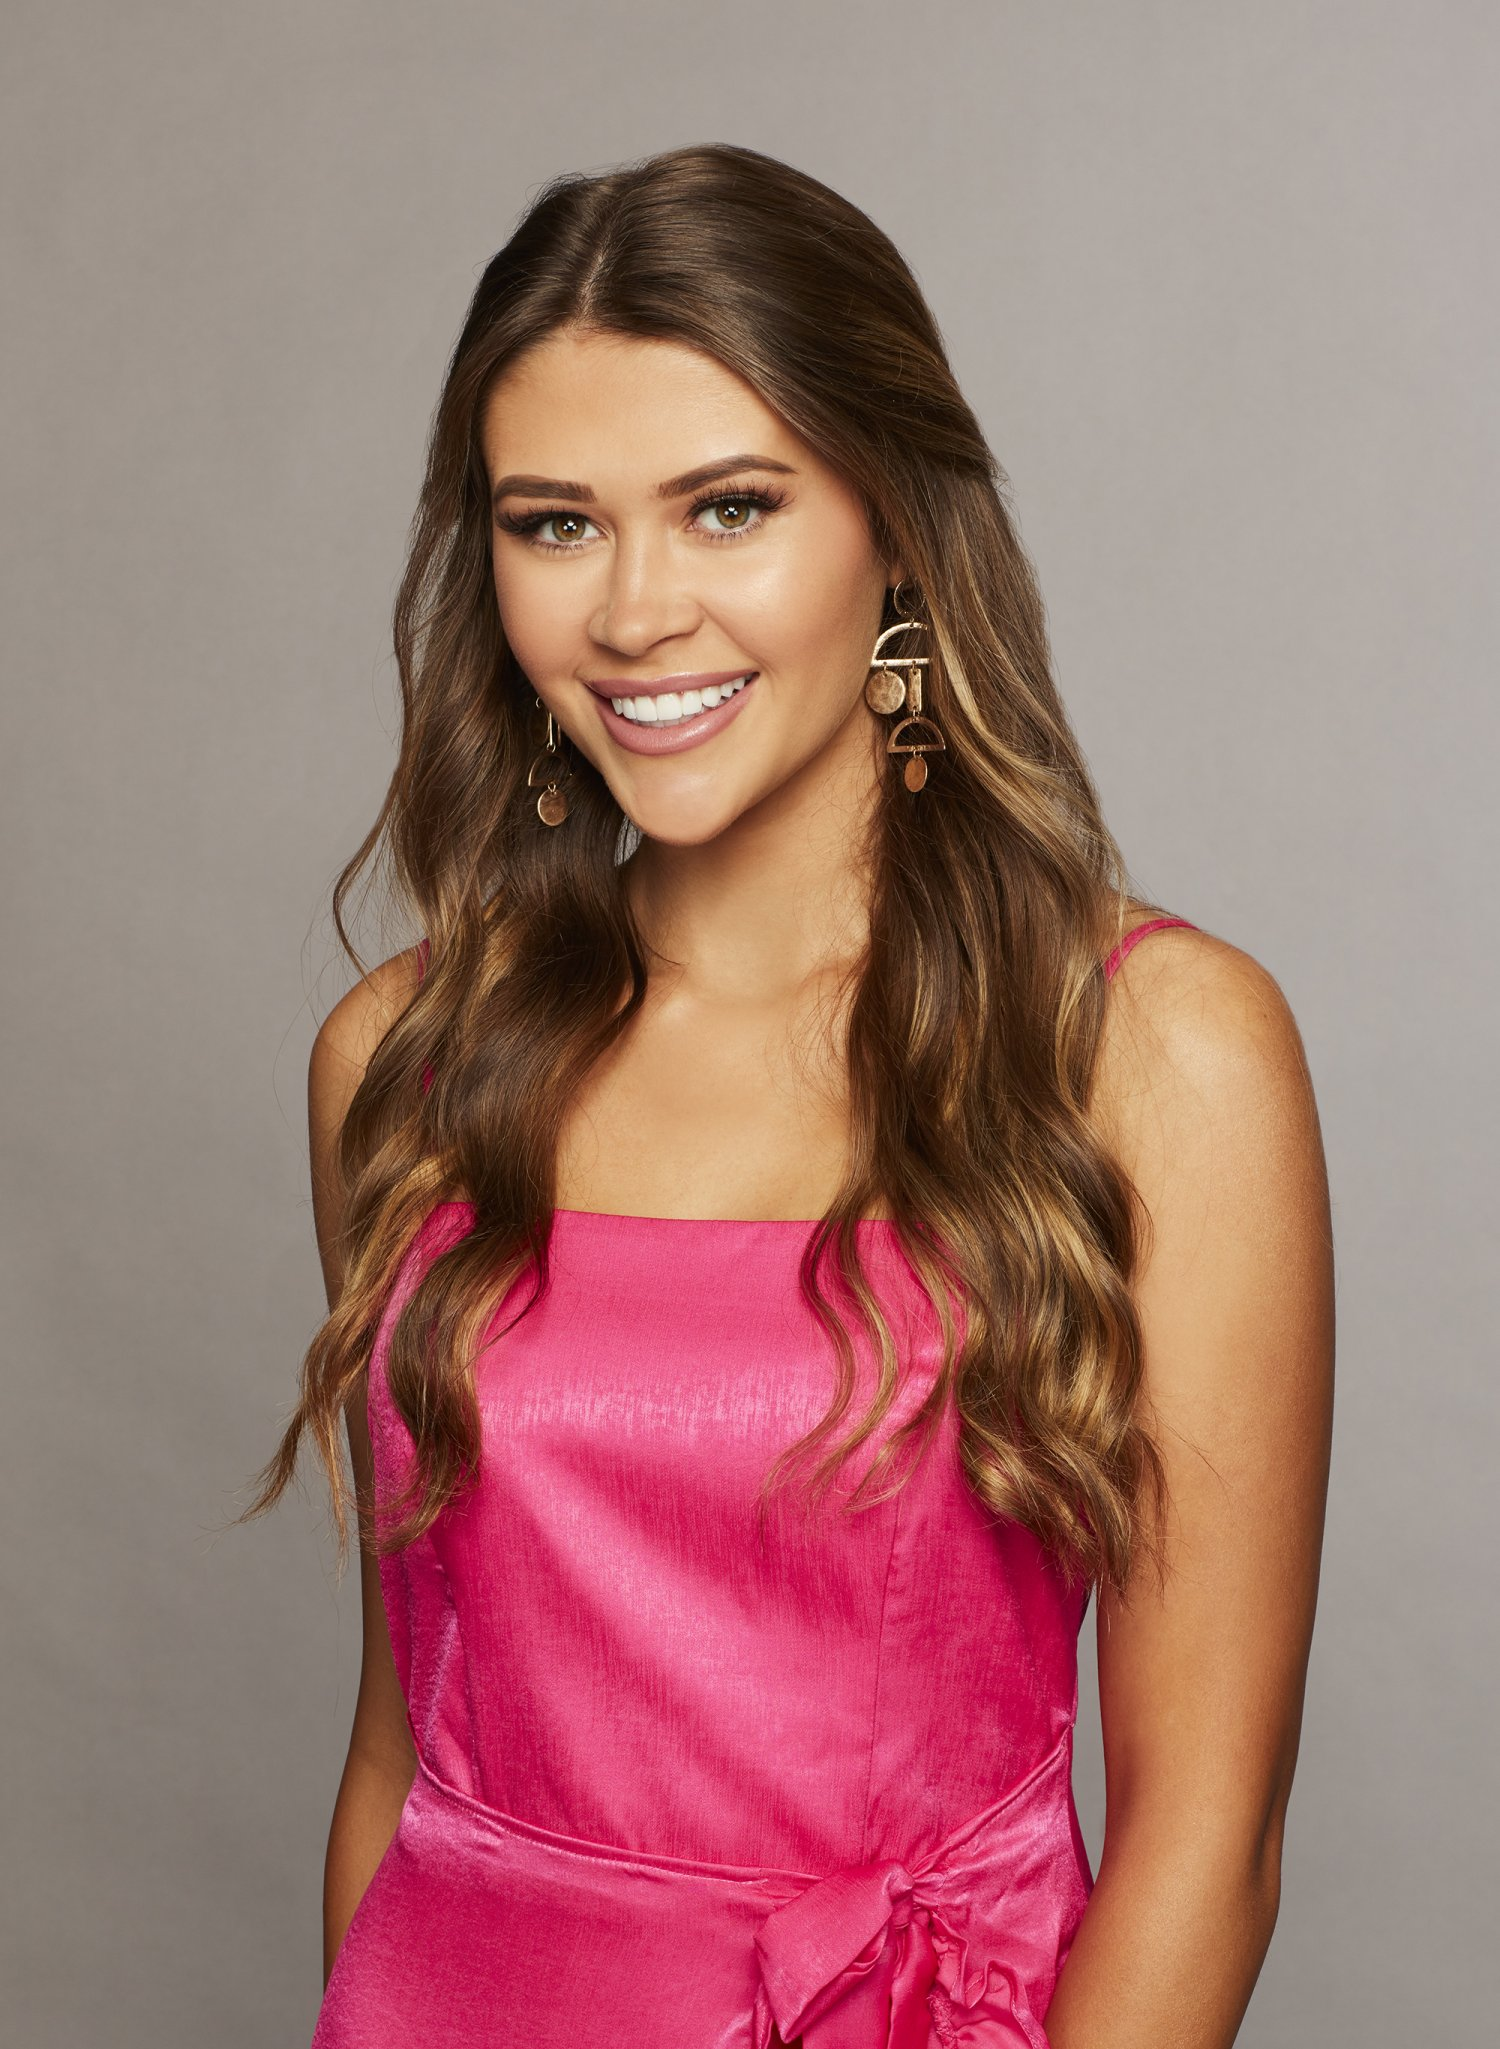 Bachelor 23 - Caelynn Miller-Keyes - *Sleuthing Spoilers* - Page 5 4835-o